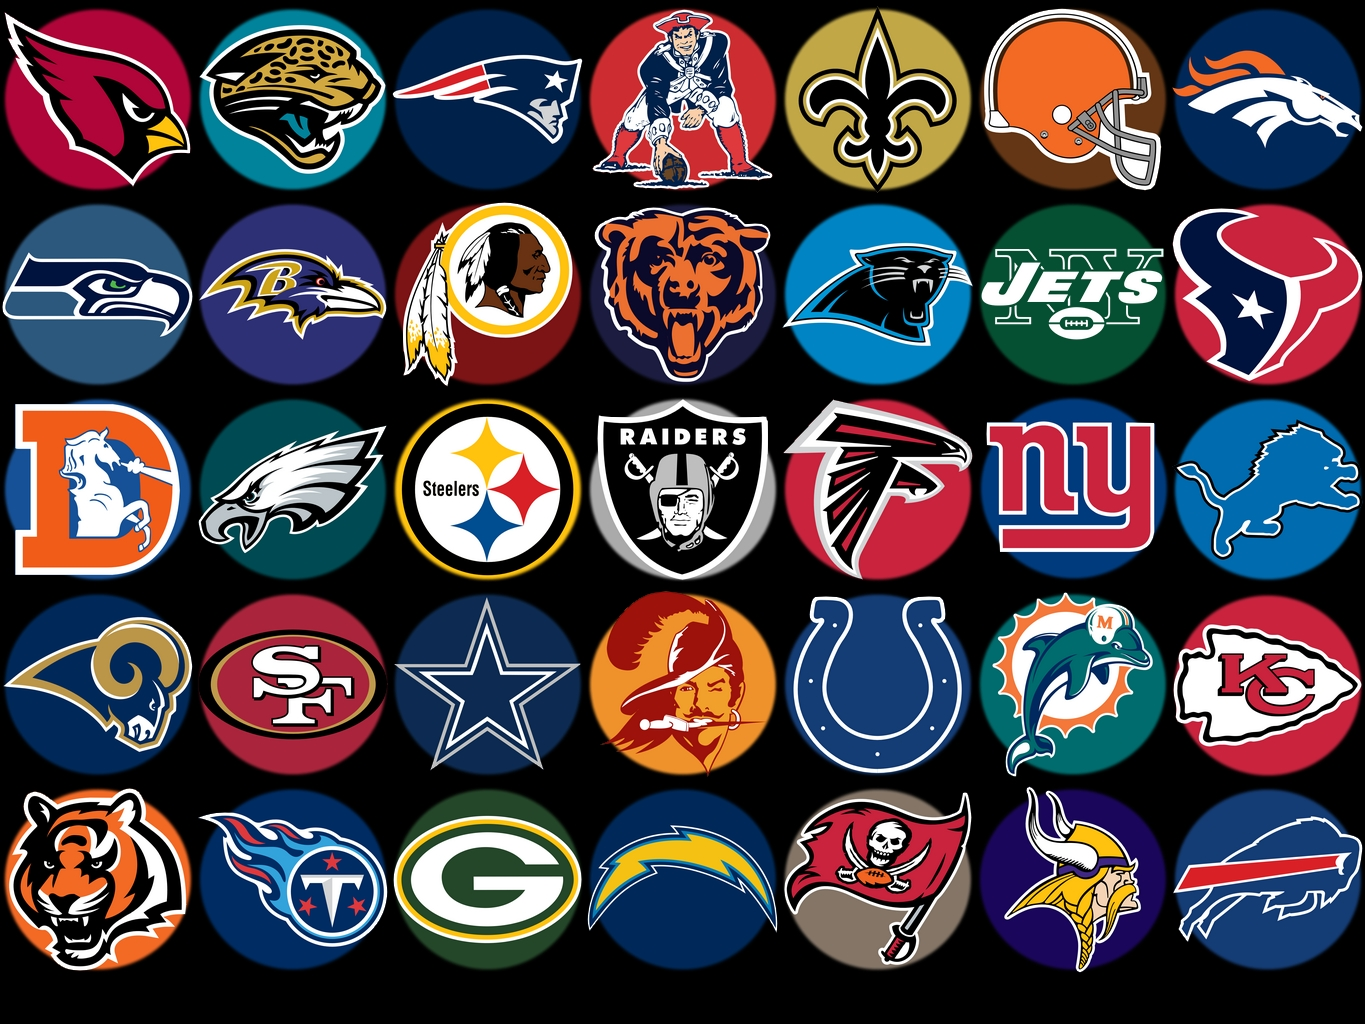 NFL Team Logos   Photo 279 of 416 phombocom 1365x1024